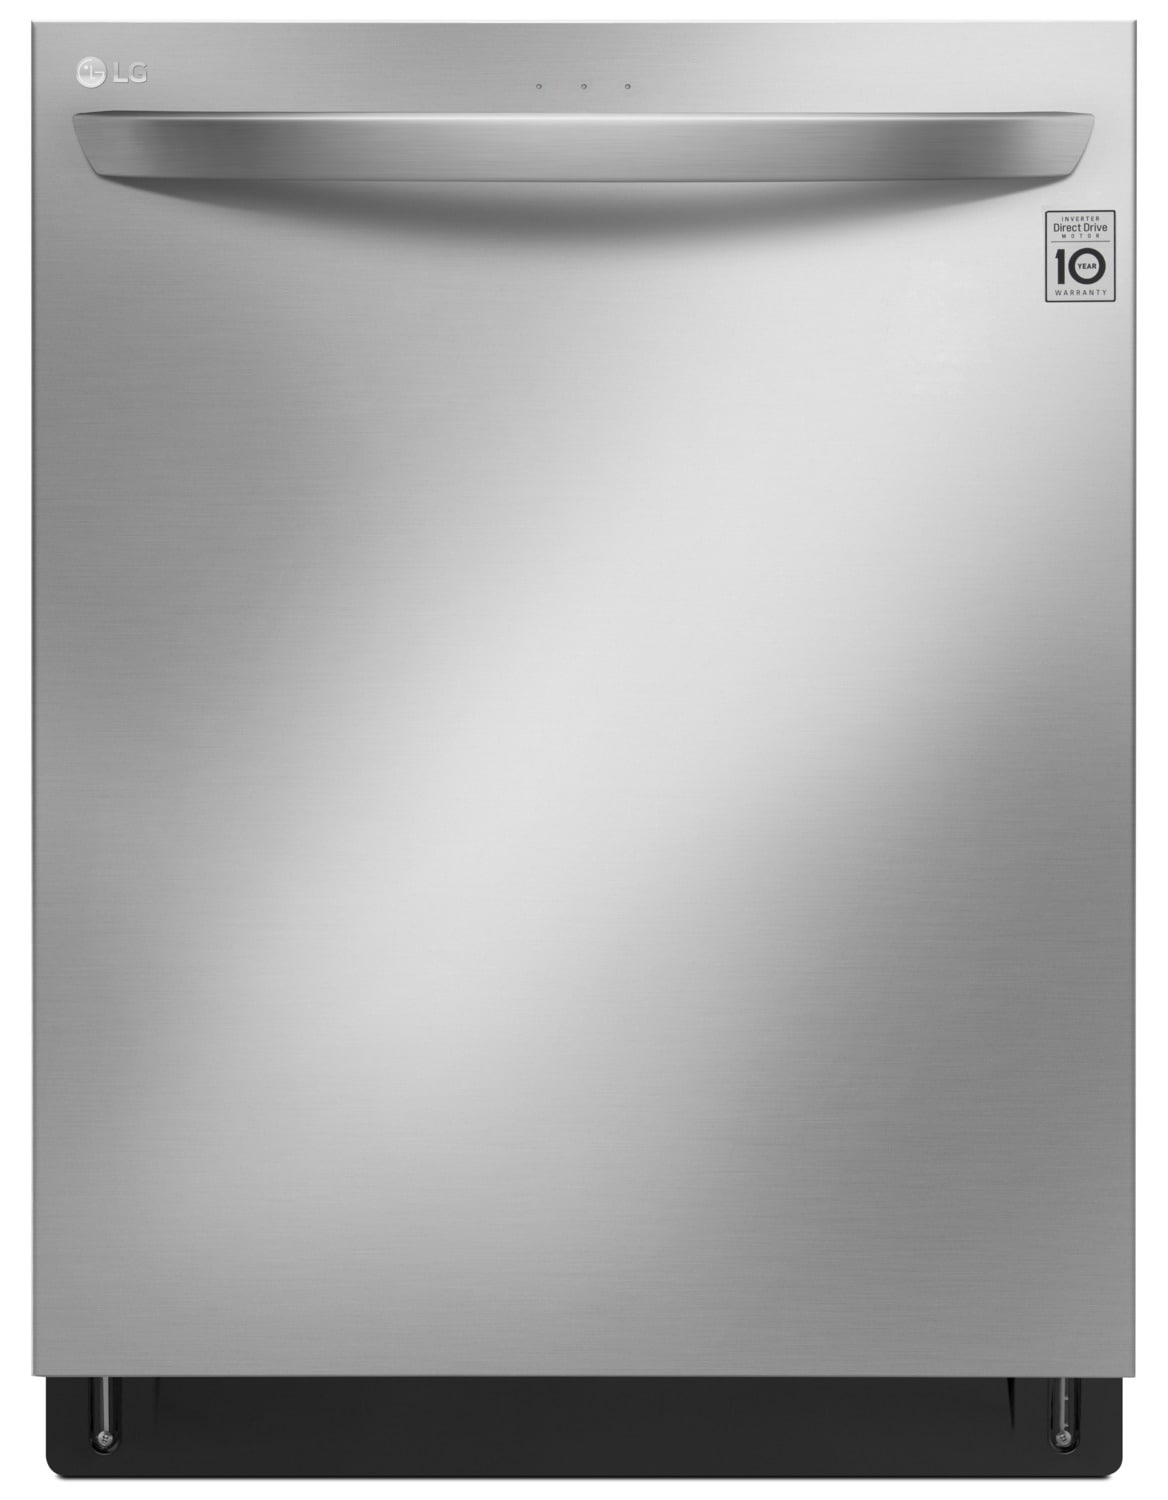 Clean-Up - LG Top-Control Dishwasher with QuadWash™ – LDT7797ST